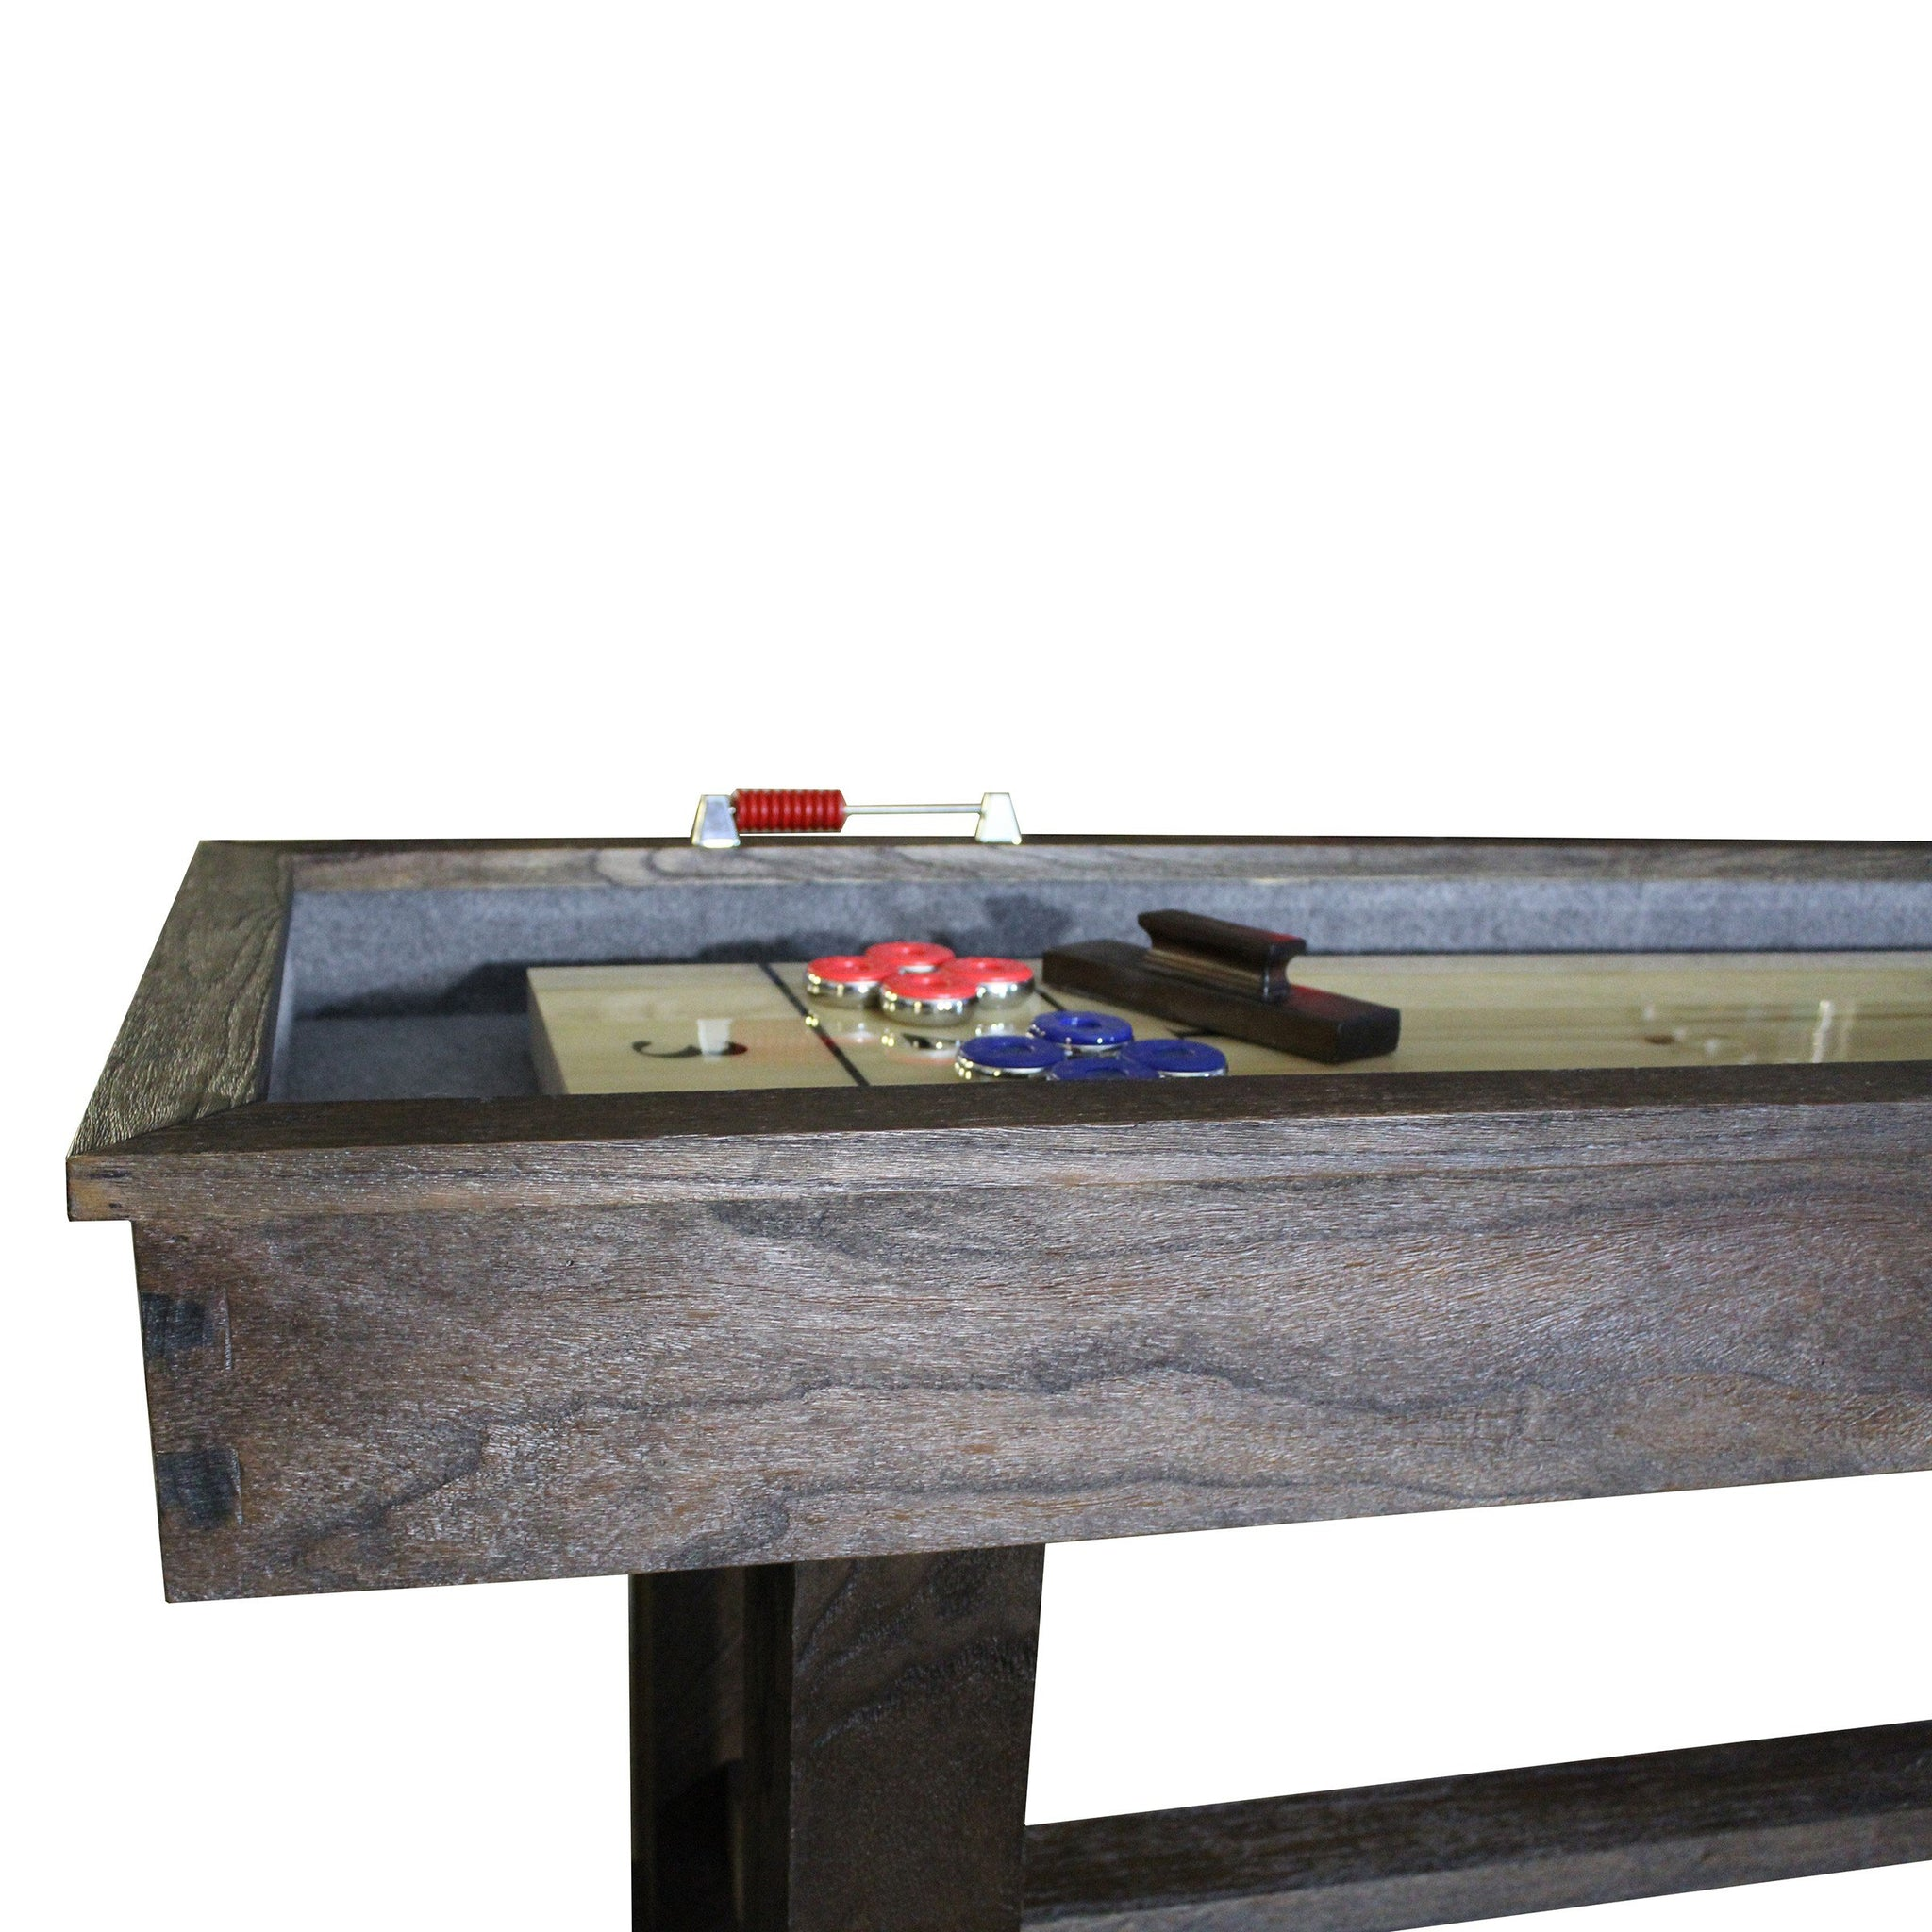 tables table game shuffleboard modern hardware him room gift new for coffee of restoration furniture